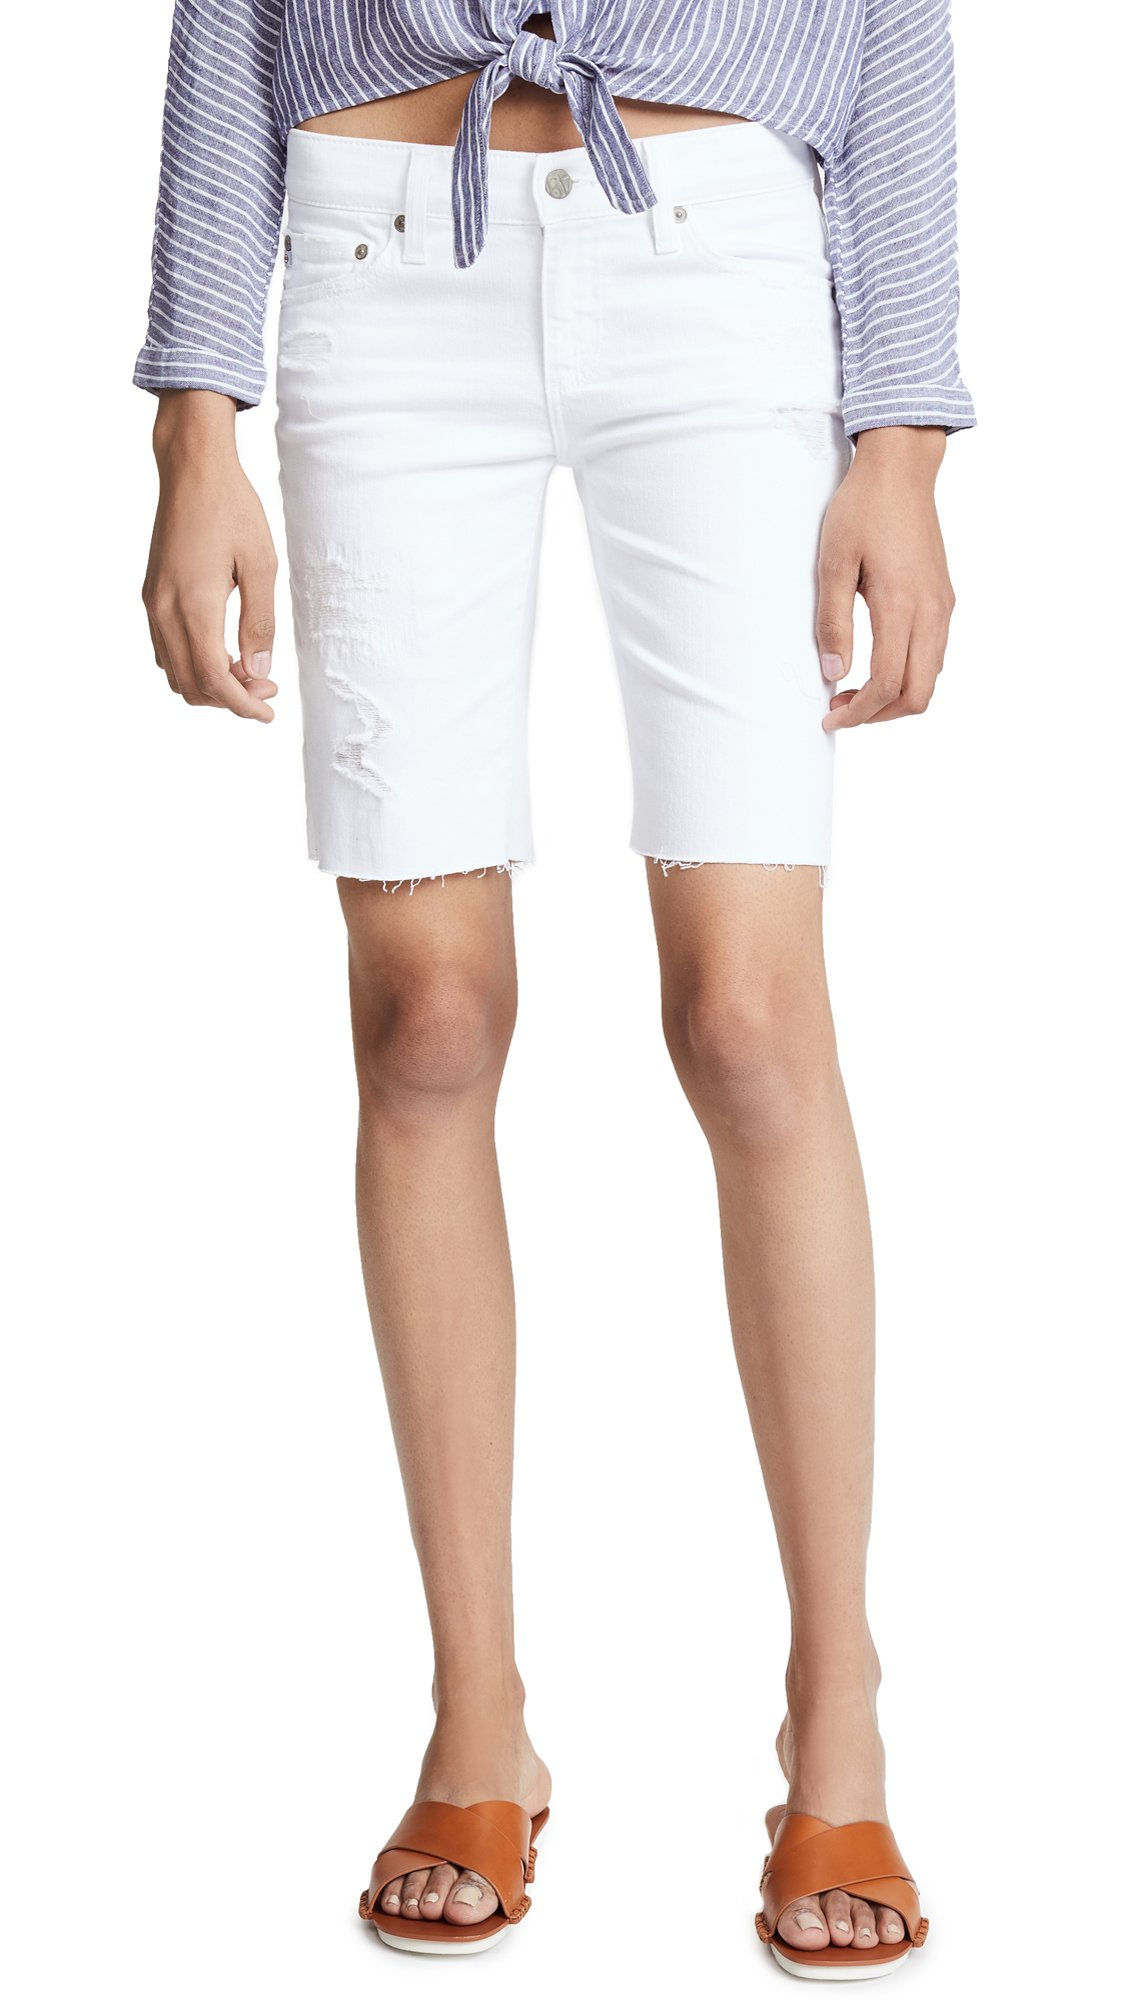 AG Women's The Nikki Shorts, 1 Year White Mended, 23